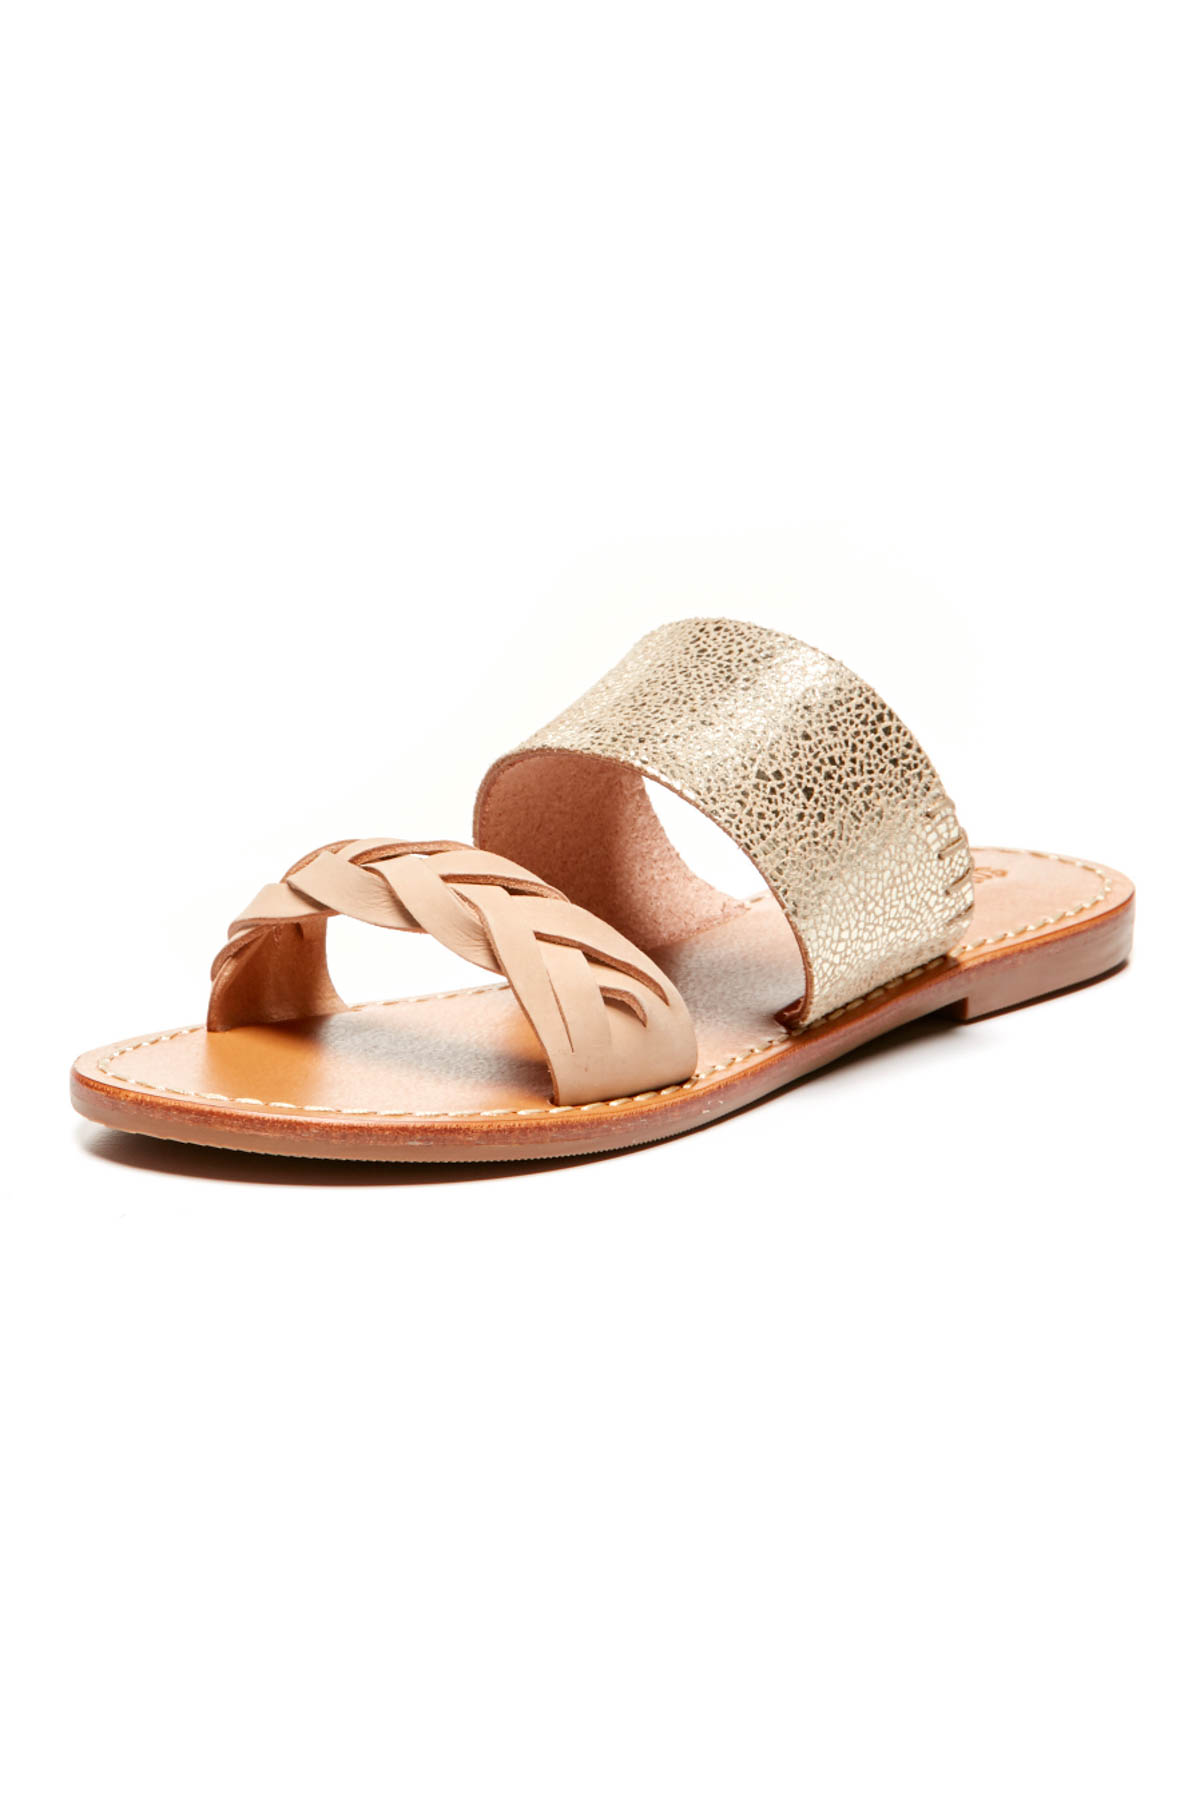 Meltallic Braided Sandals - Nude/Pale Gold 1